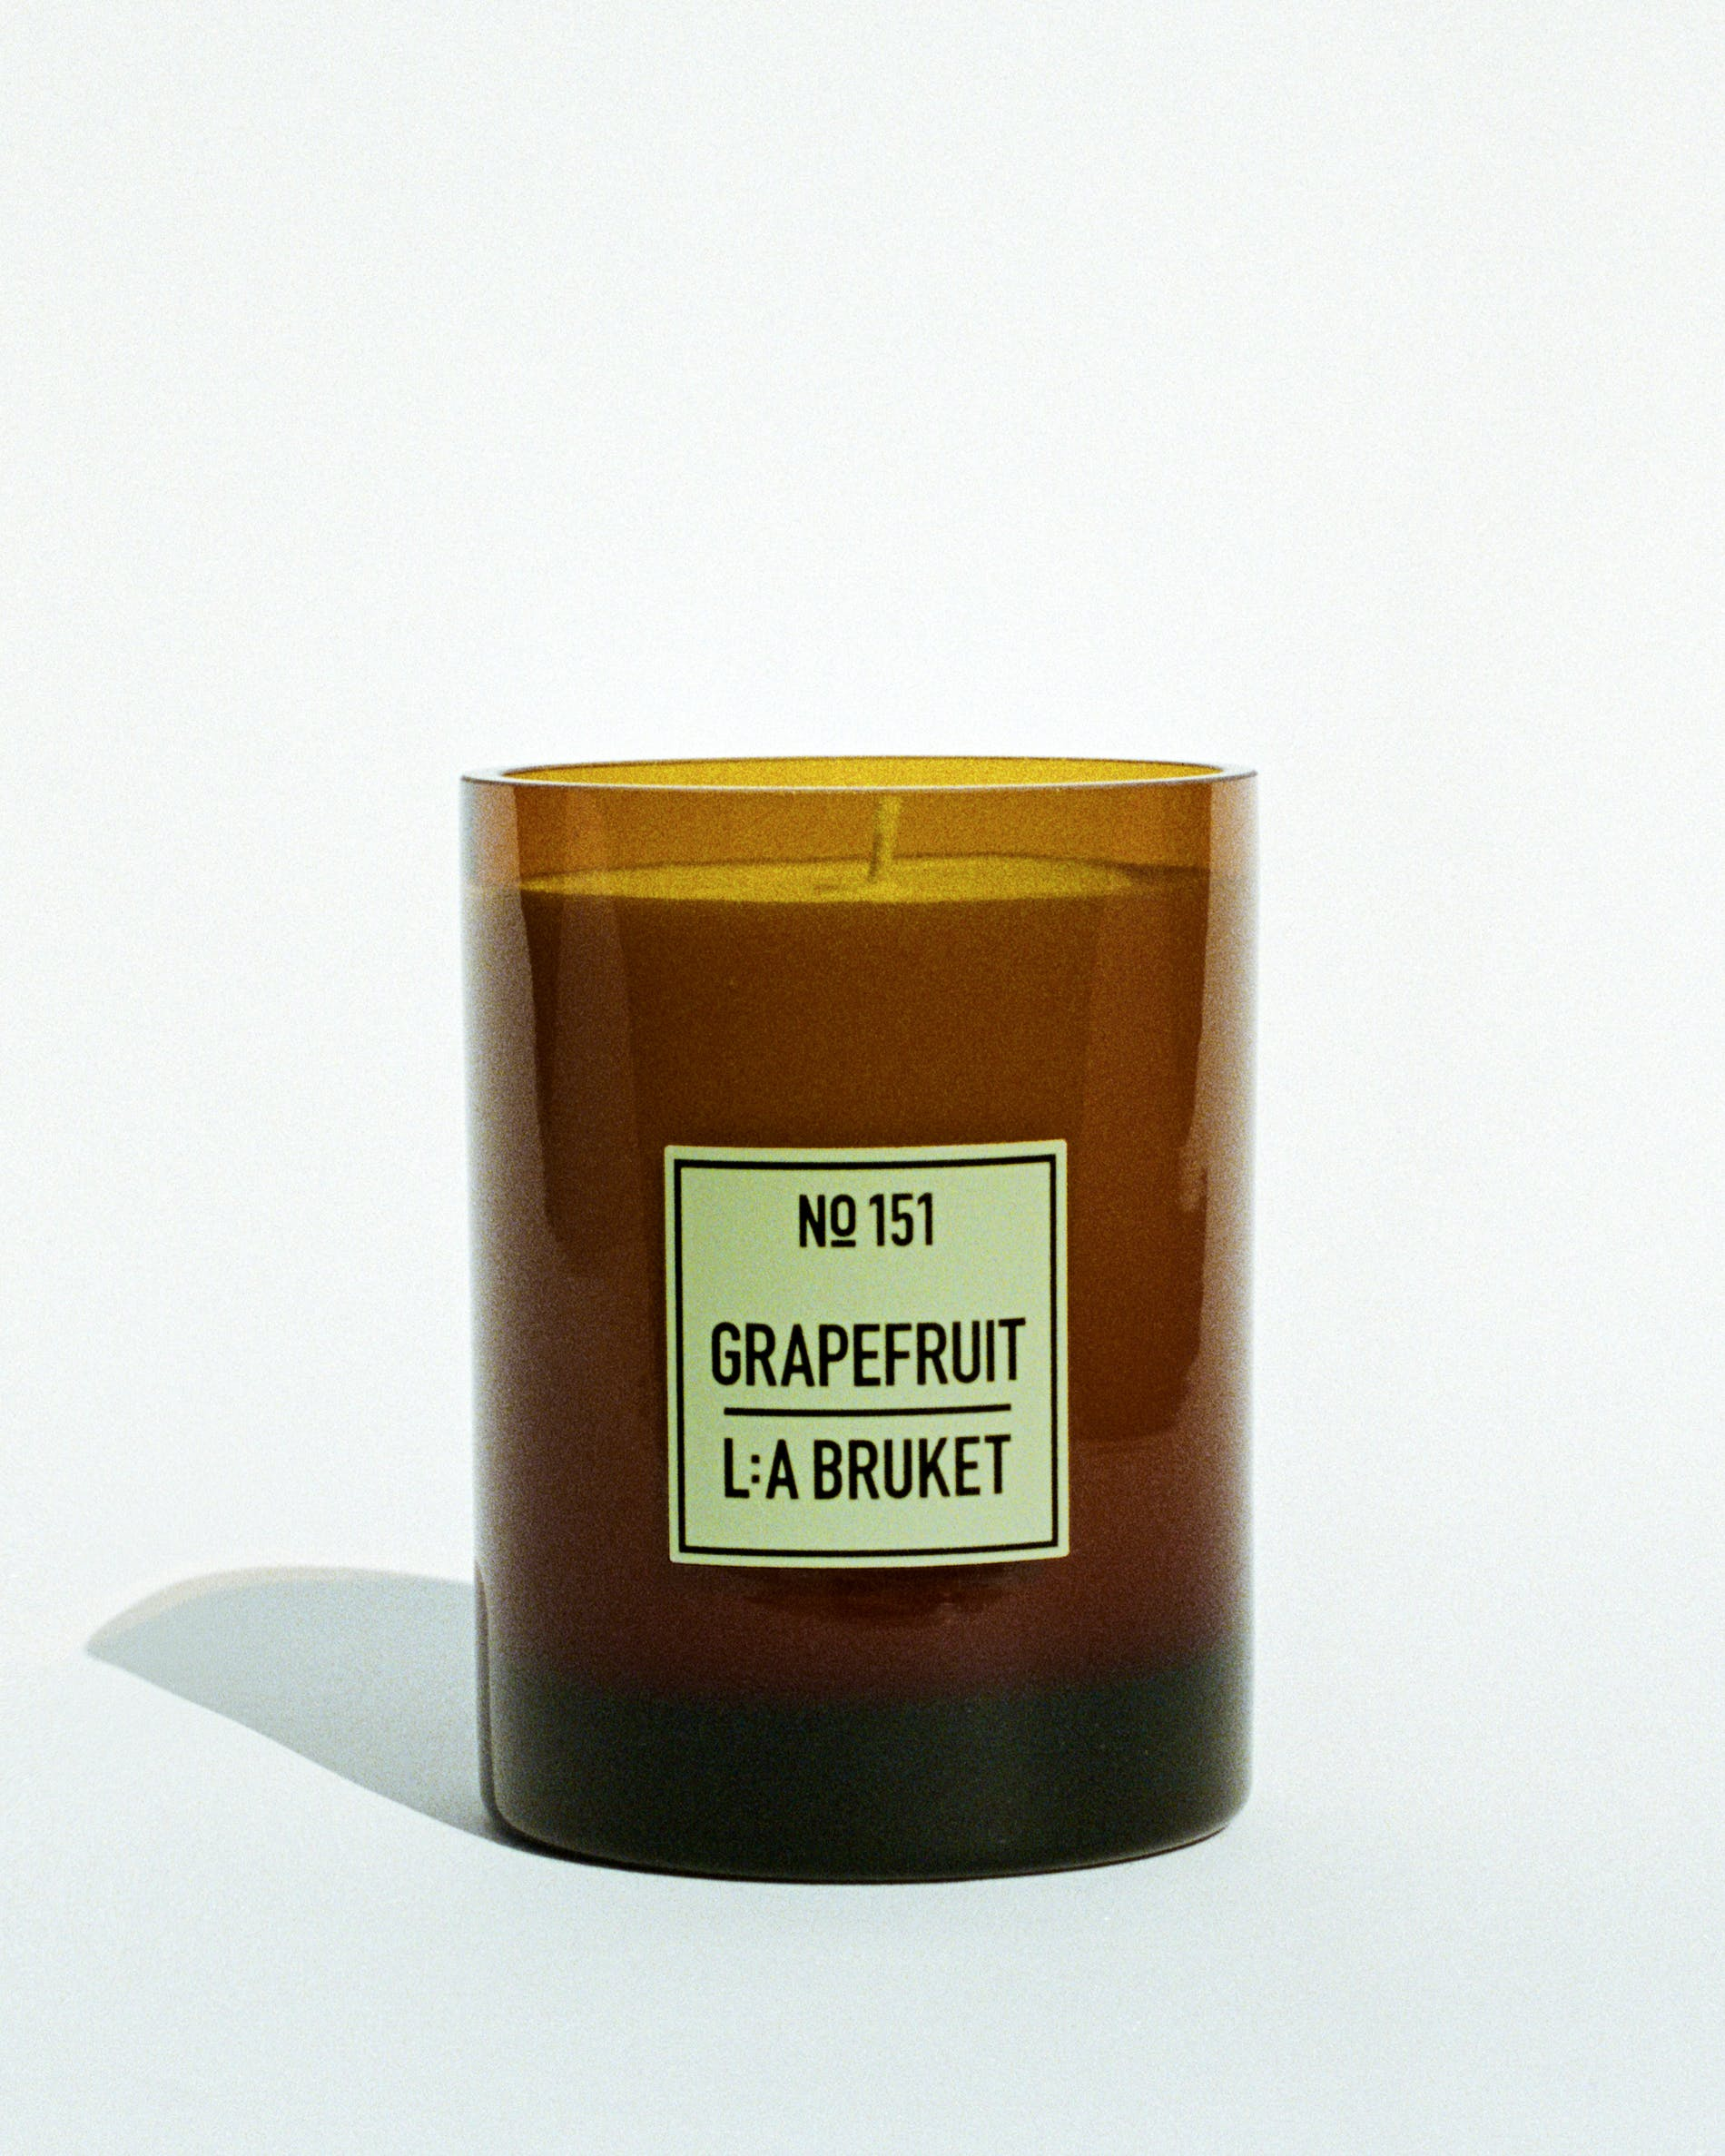 Scented candle (limited edition)